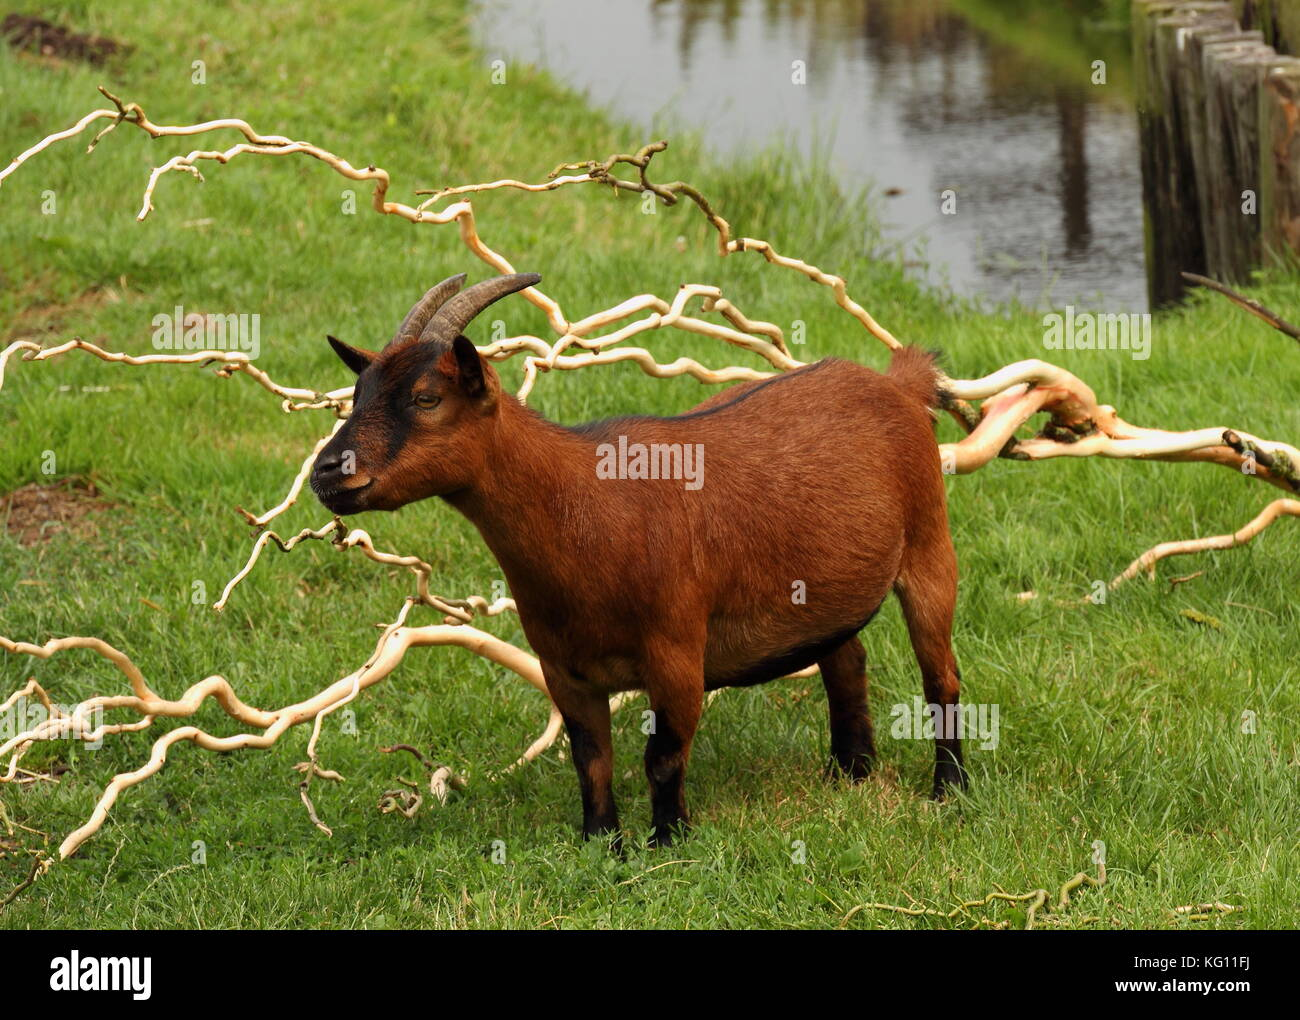 Farm scene in landscape format - a brown goat grazes in a paddock with green grass and a stream - Stock Image